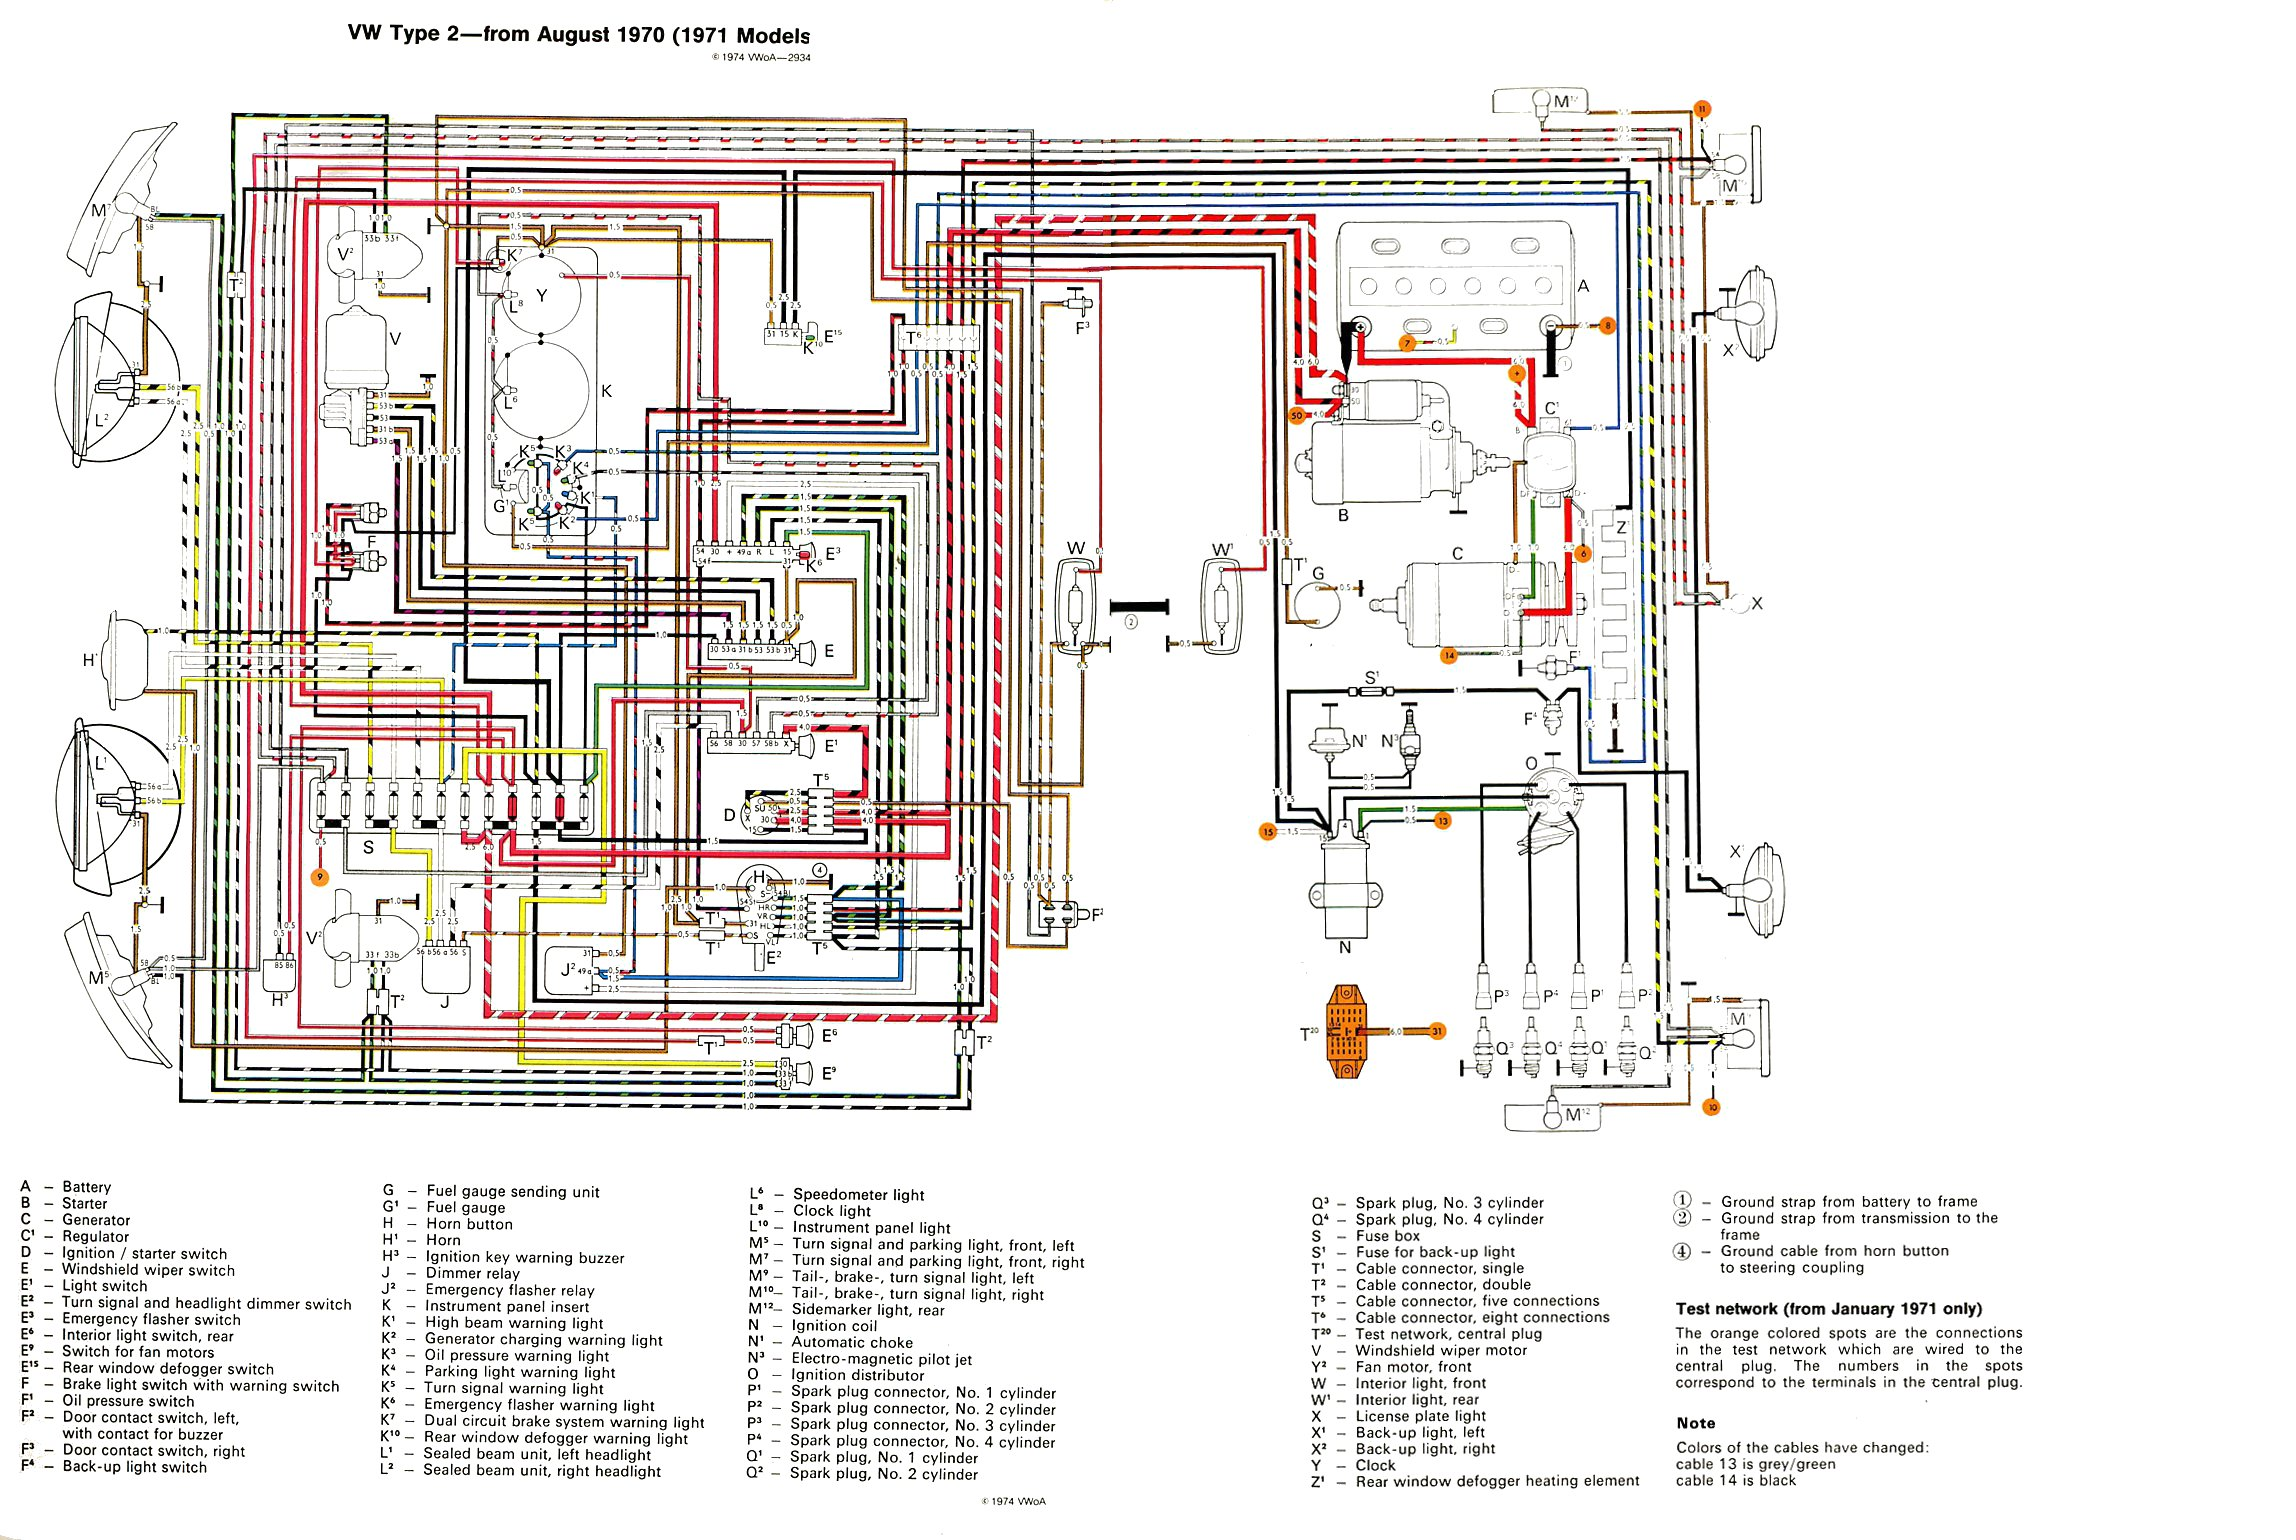 thesamba com type 2 wiring diagrams rh thesamba com fuse box wiring diagram triton boat fuse box wiring diagram kubota b3030